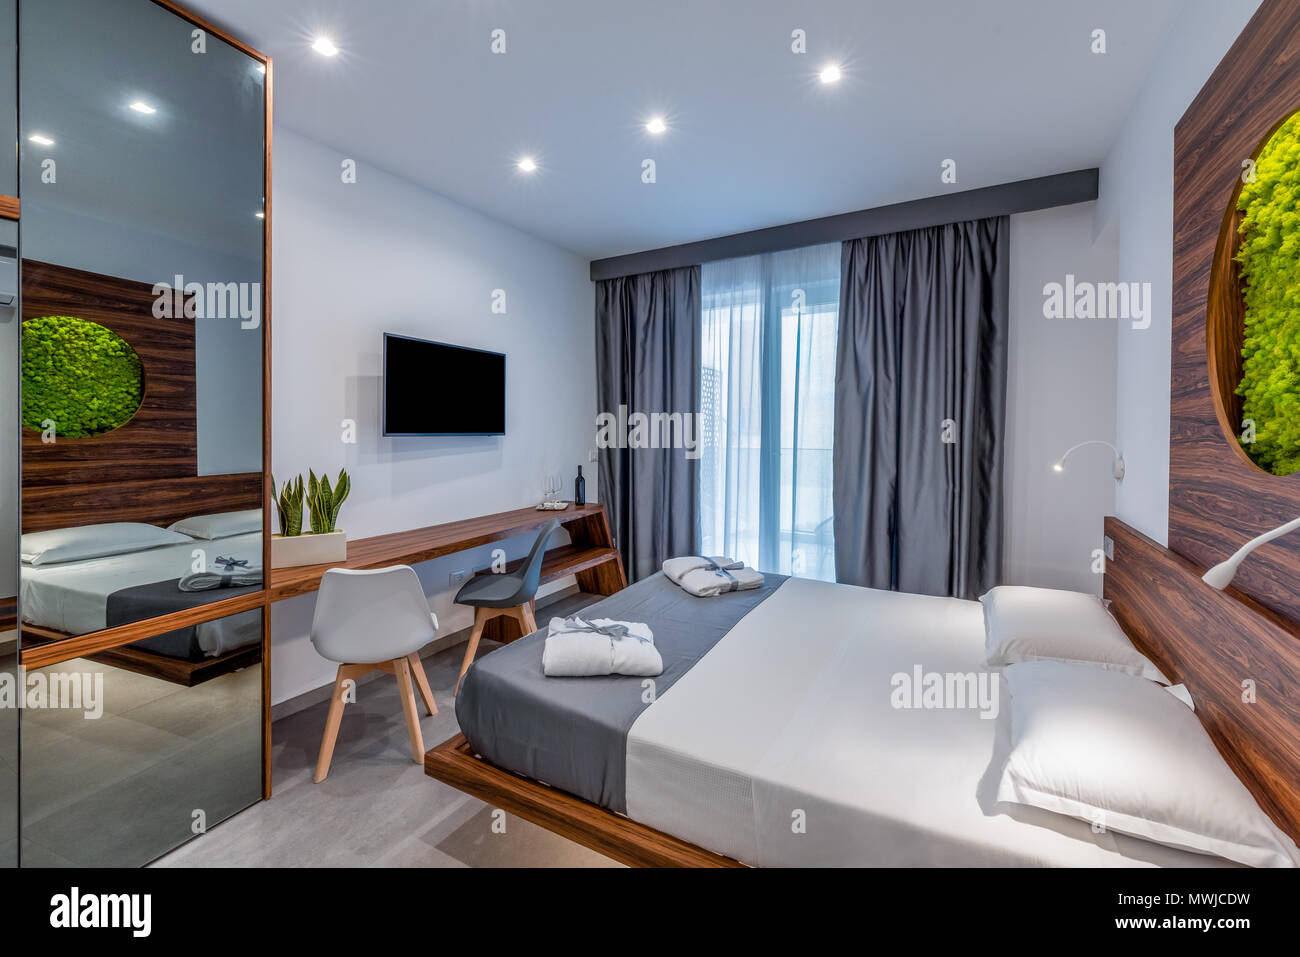 Hotel room with modern interior stock photo alamy